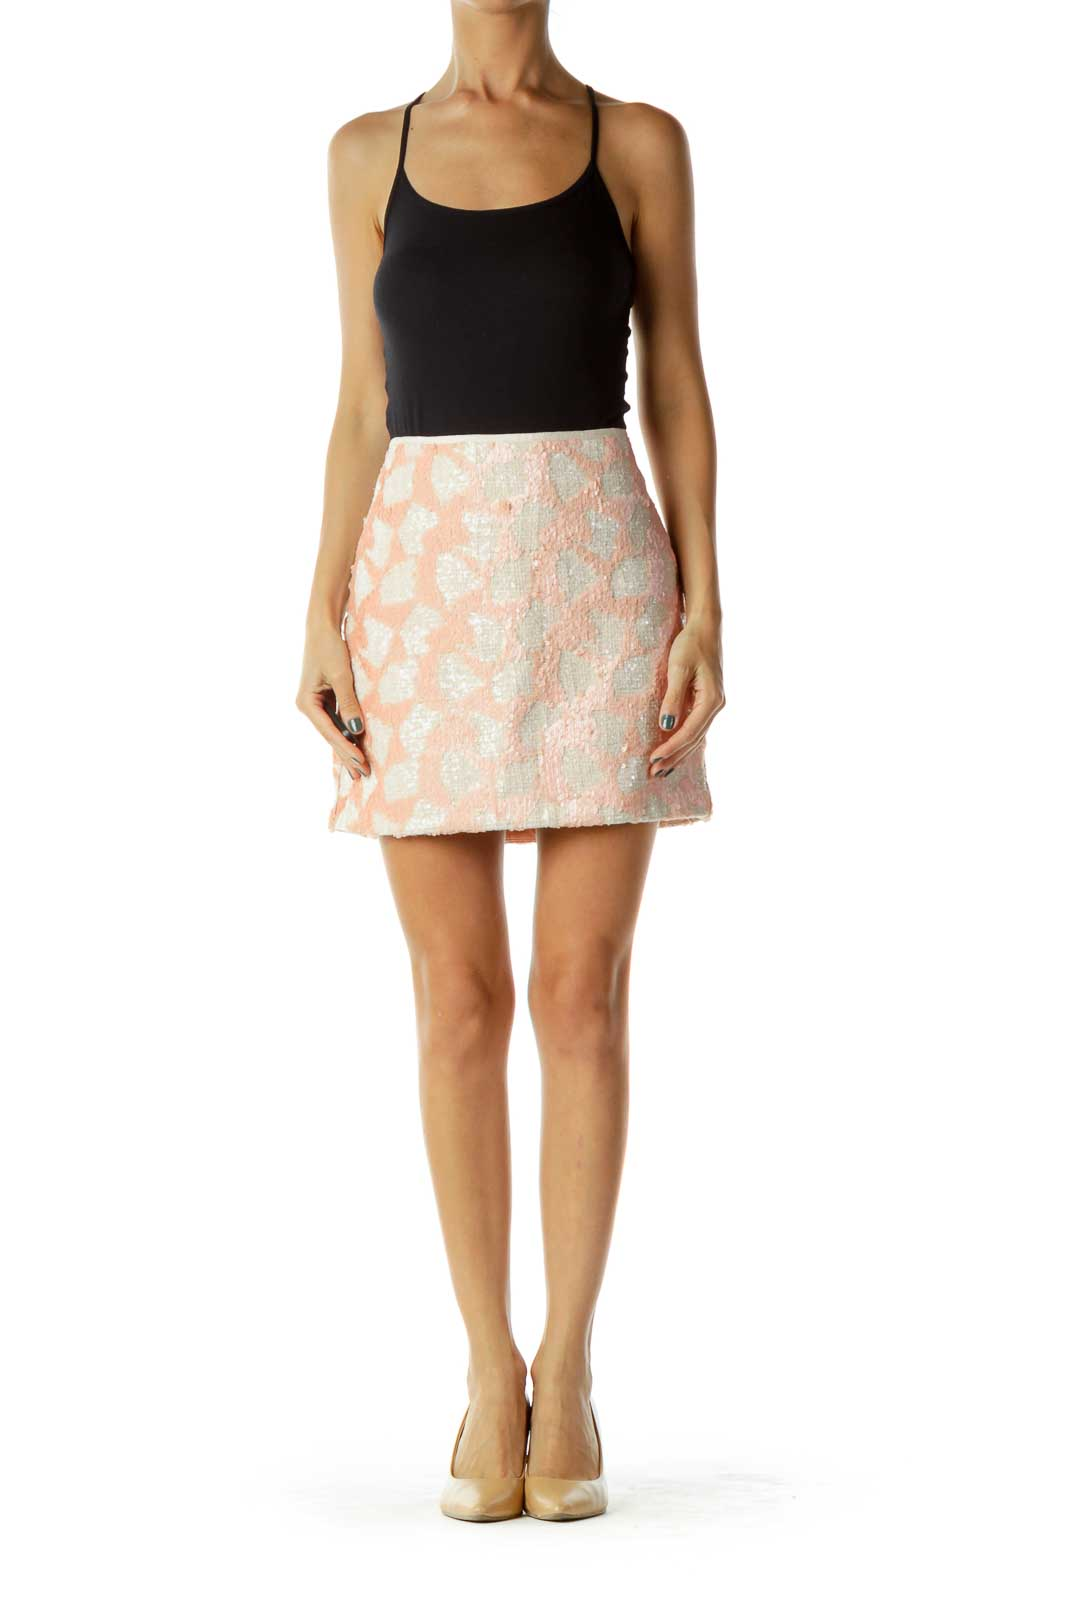 Beige/Light Pink Sequined Mini Skirt